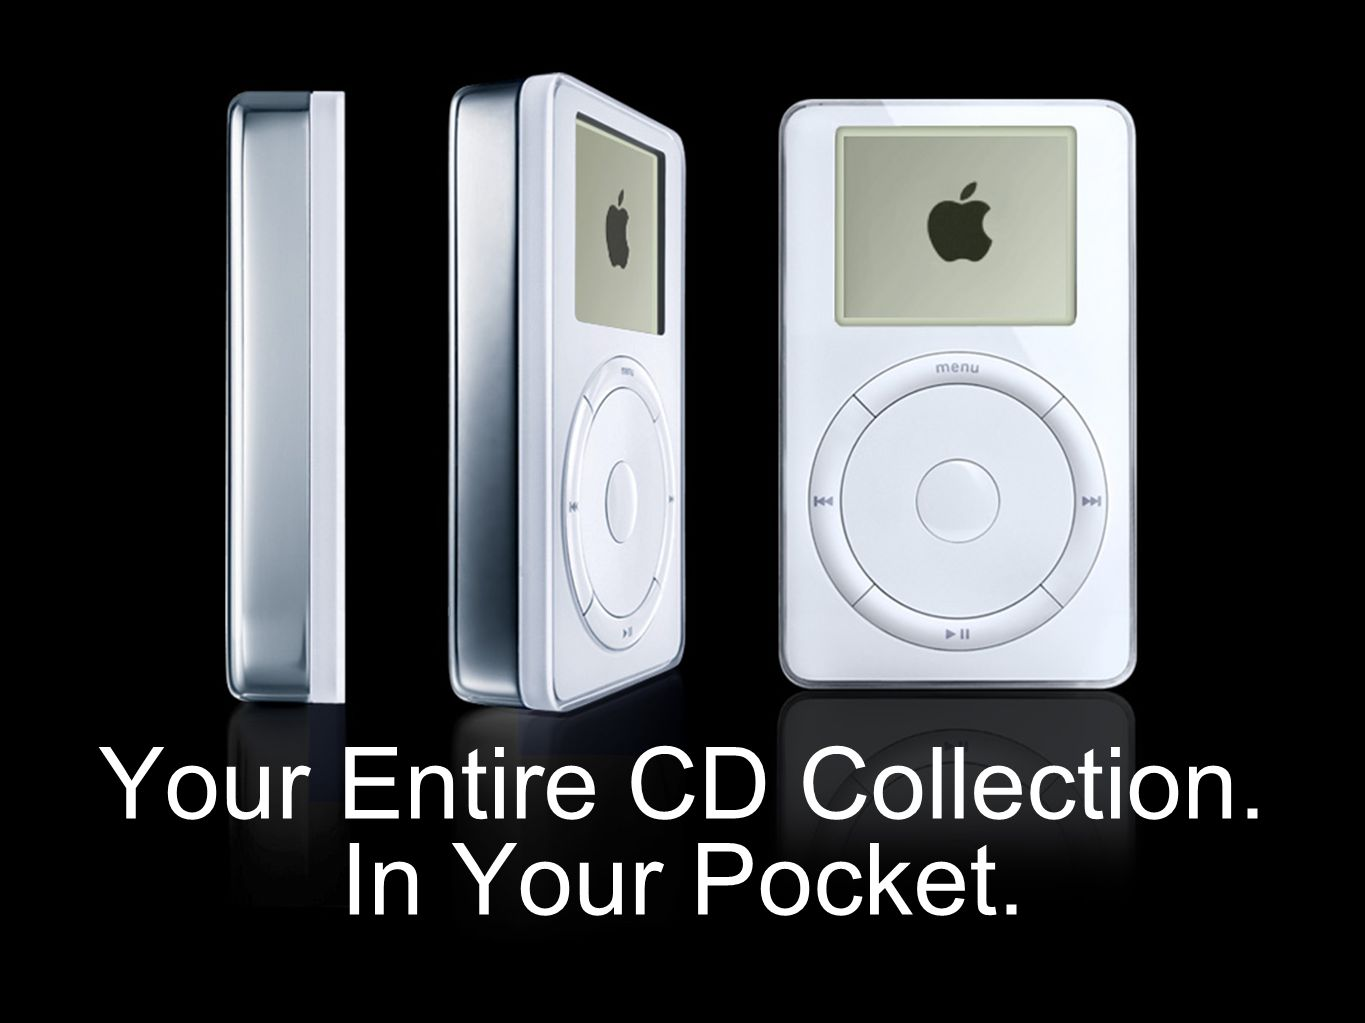 Your Entire CD Collection. In Your Pocket.